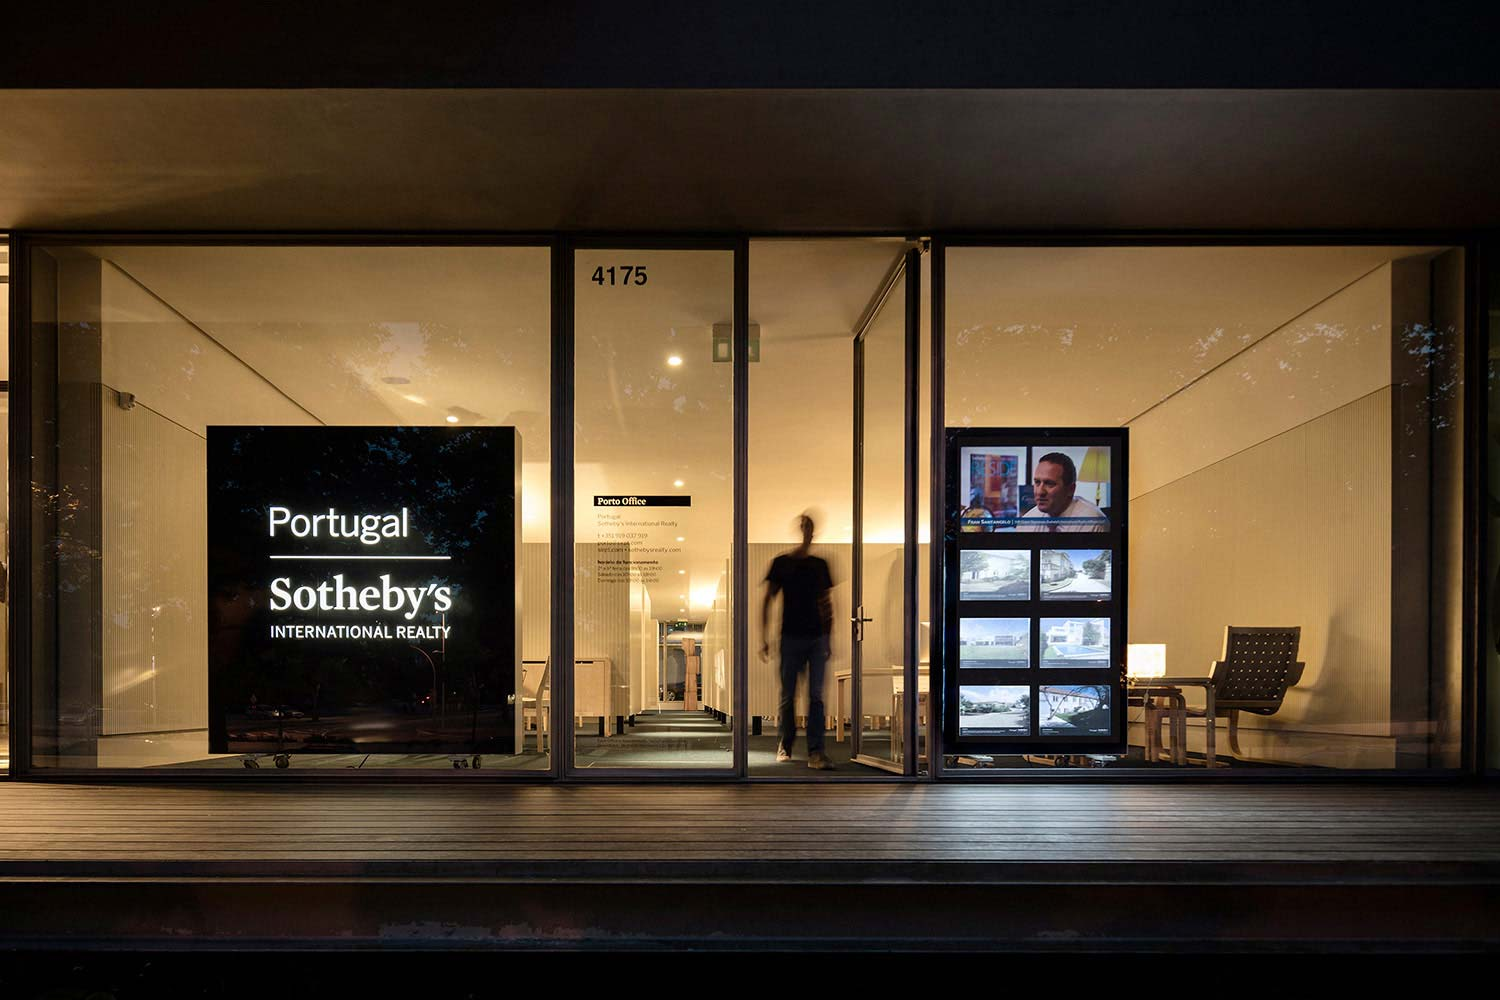 SOTHEBY'S INTERNATIONAL REALTY – PORTUGAL